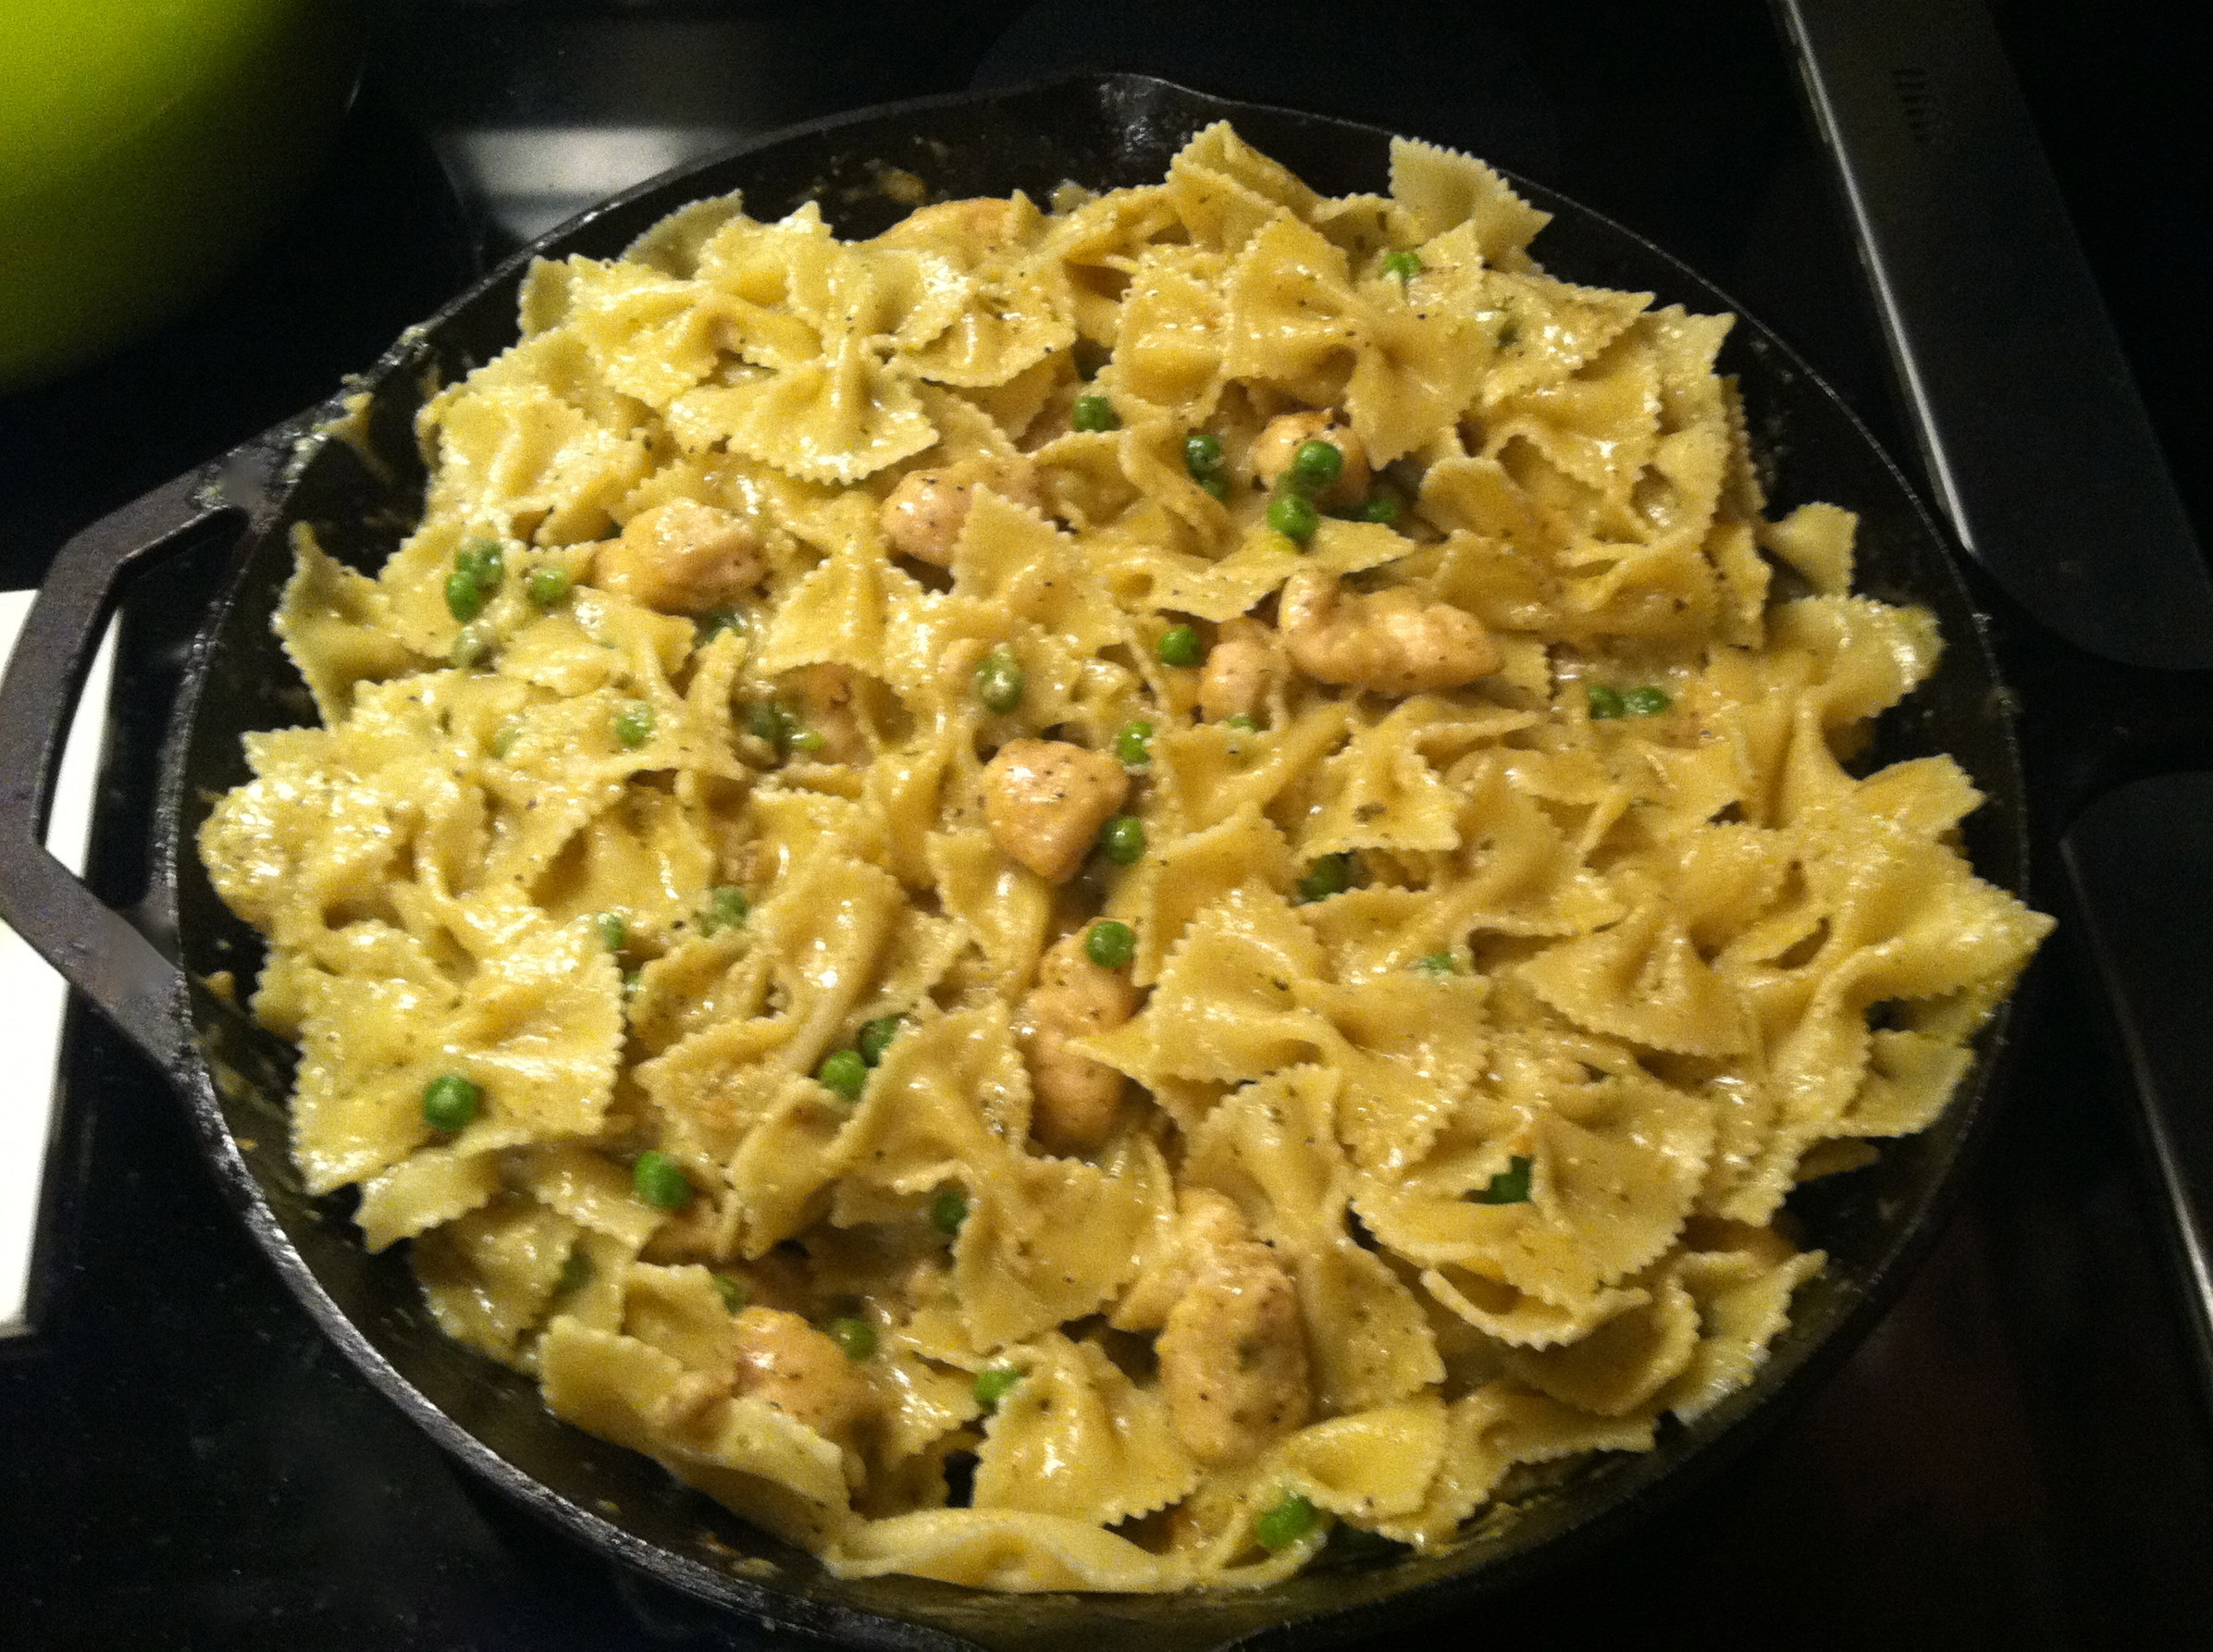 Chicken Spaghetti Recipe Paula Deen  Chicken Pesto Pasta and a side of Brussel Sprouts